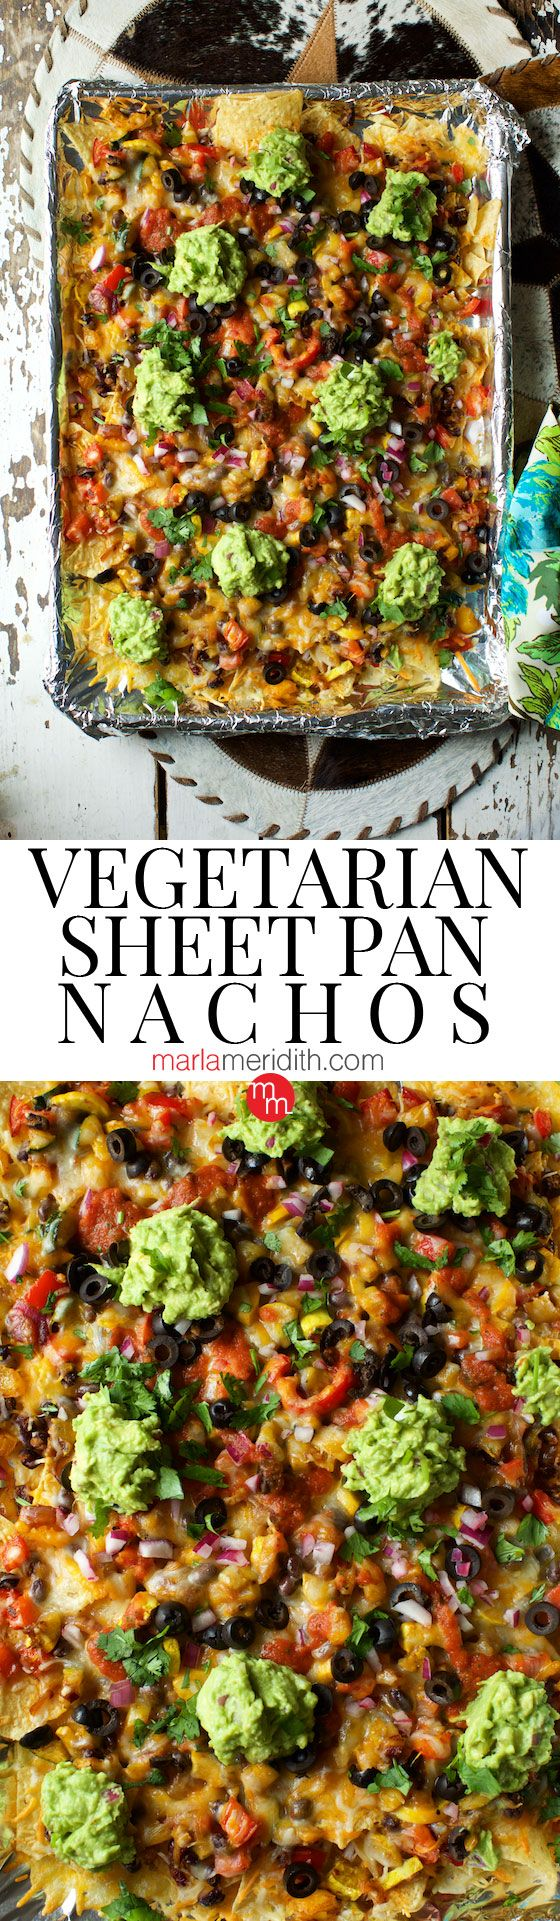 Vegetarian Sheet Pan Nachos recipe, the best nachos you will ever eat! Serve for family dinners and Cinco de Mayo. MarlaMeridith.com ( @marlameridith )